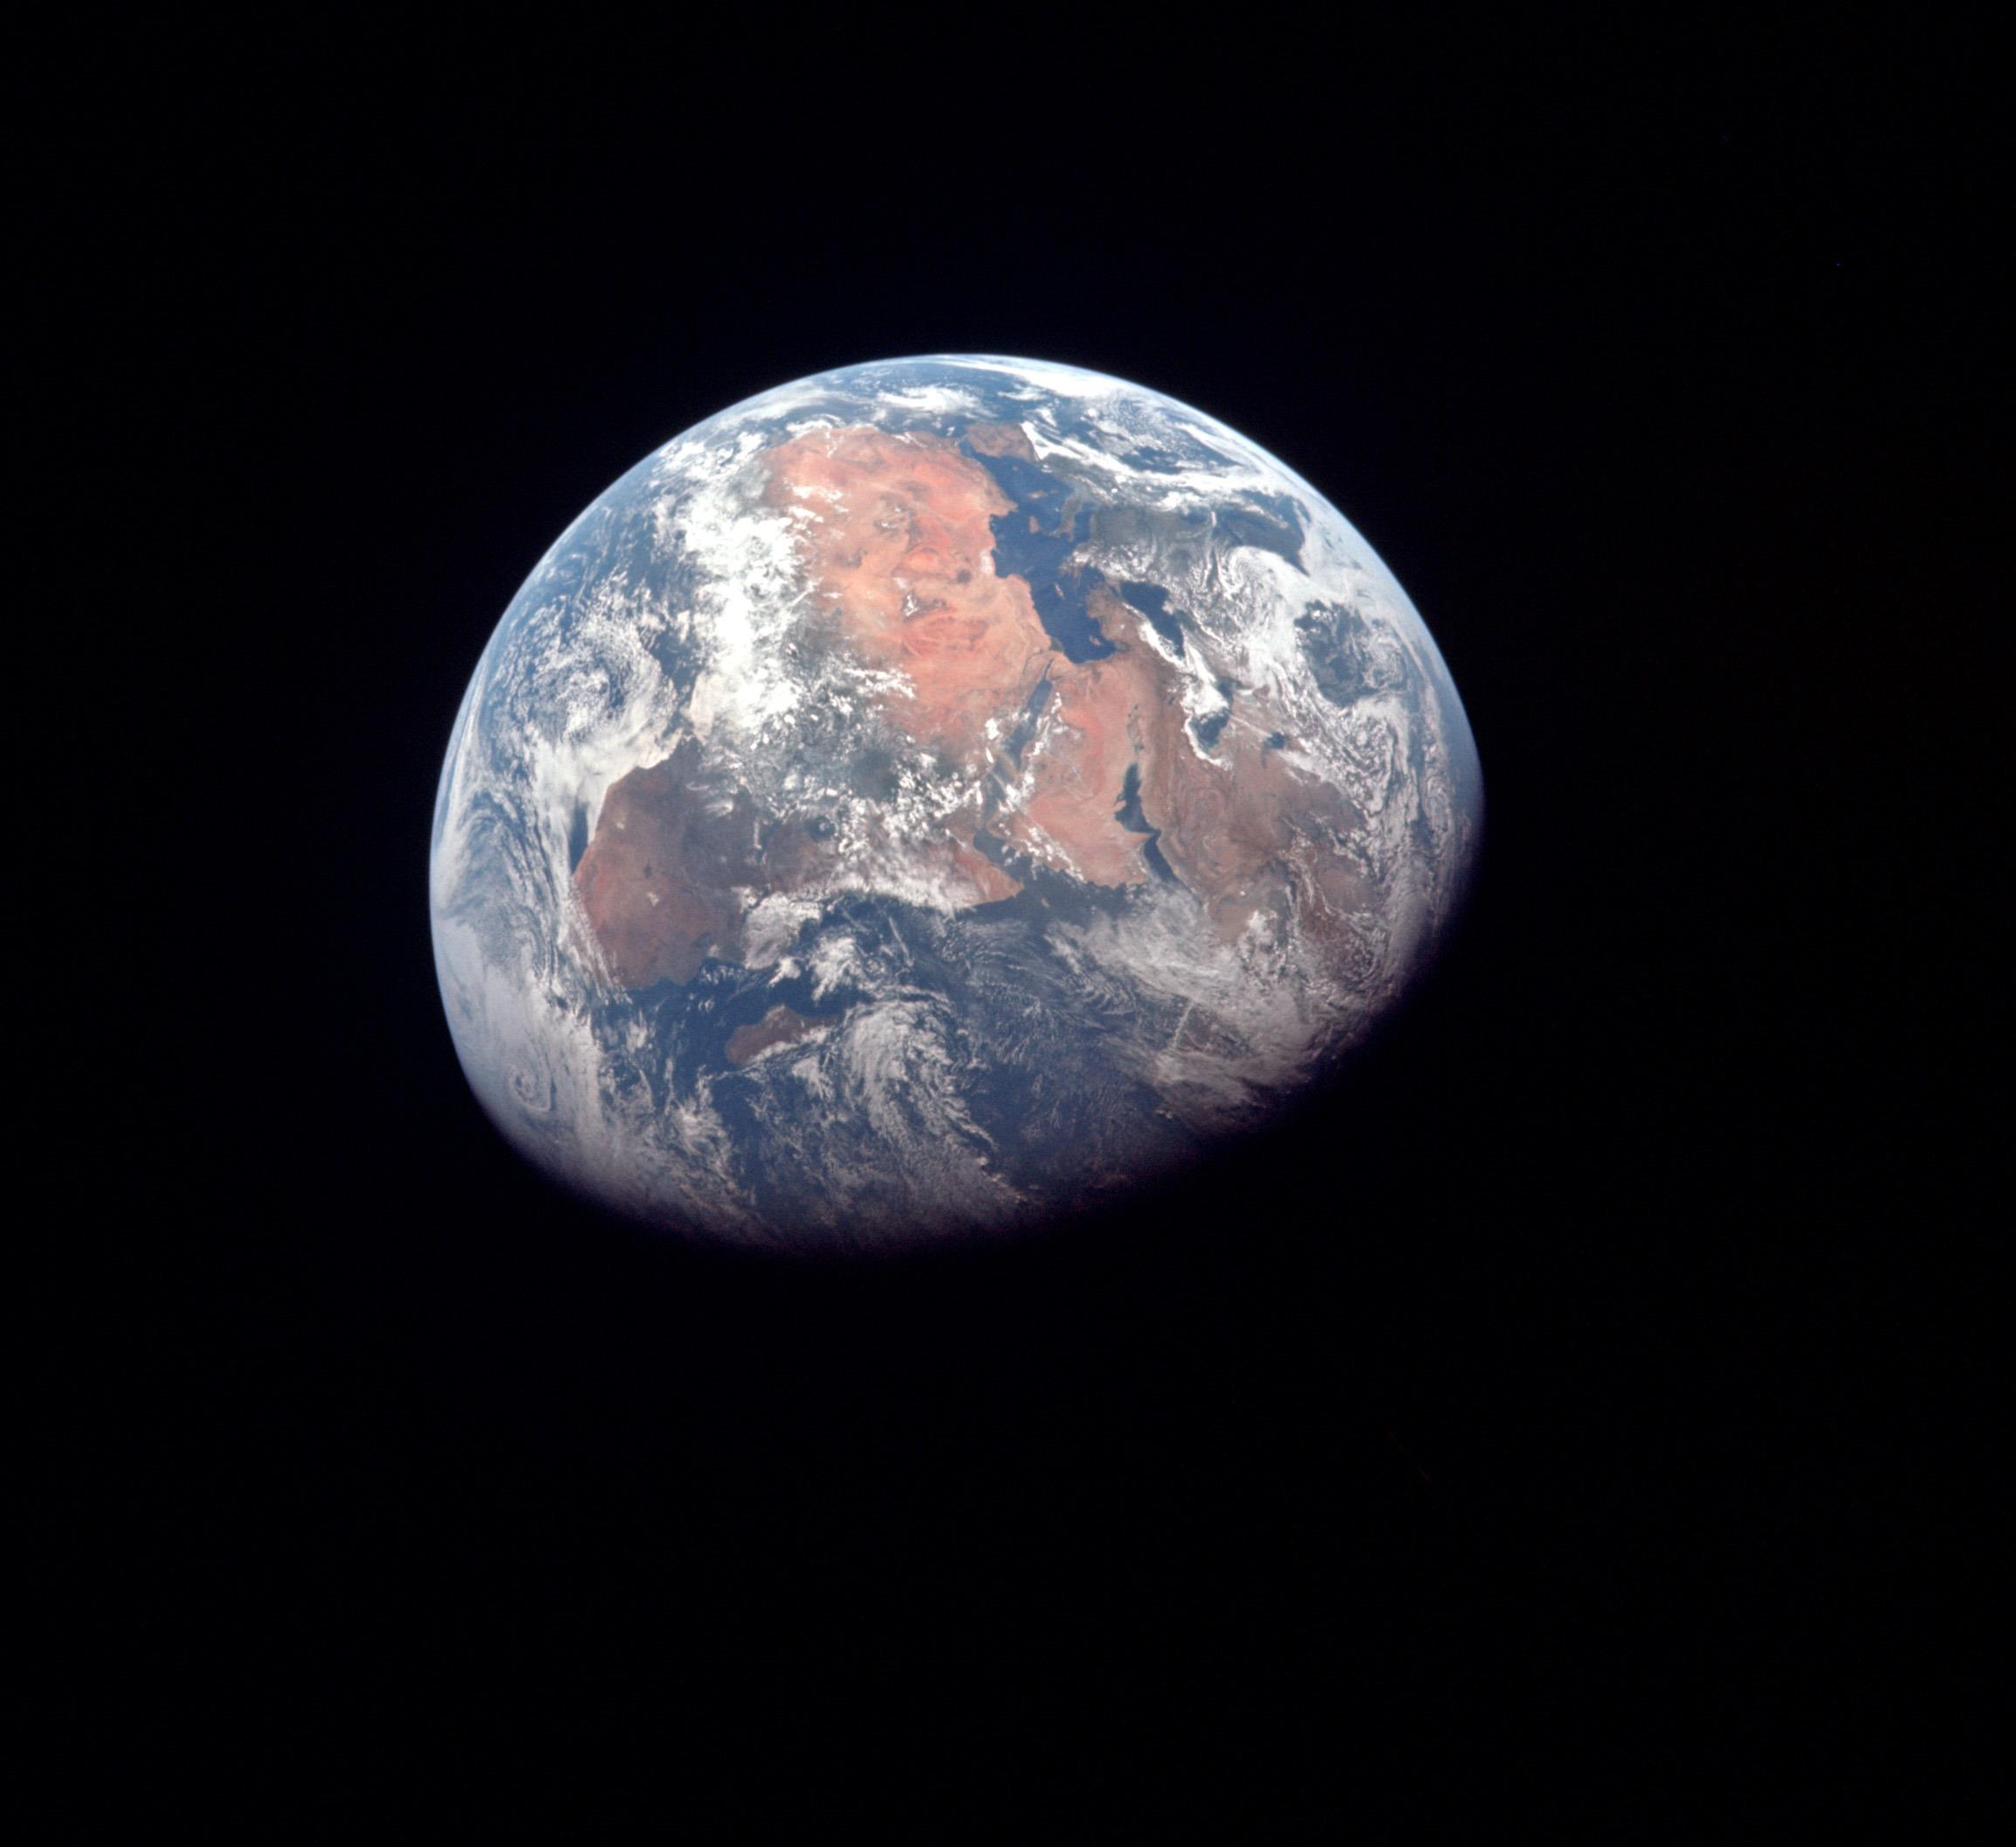 earth from moon apollo - photo #2